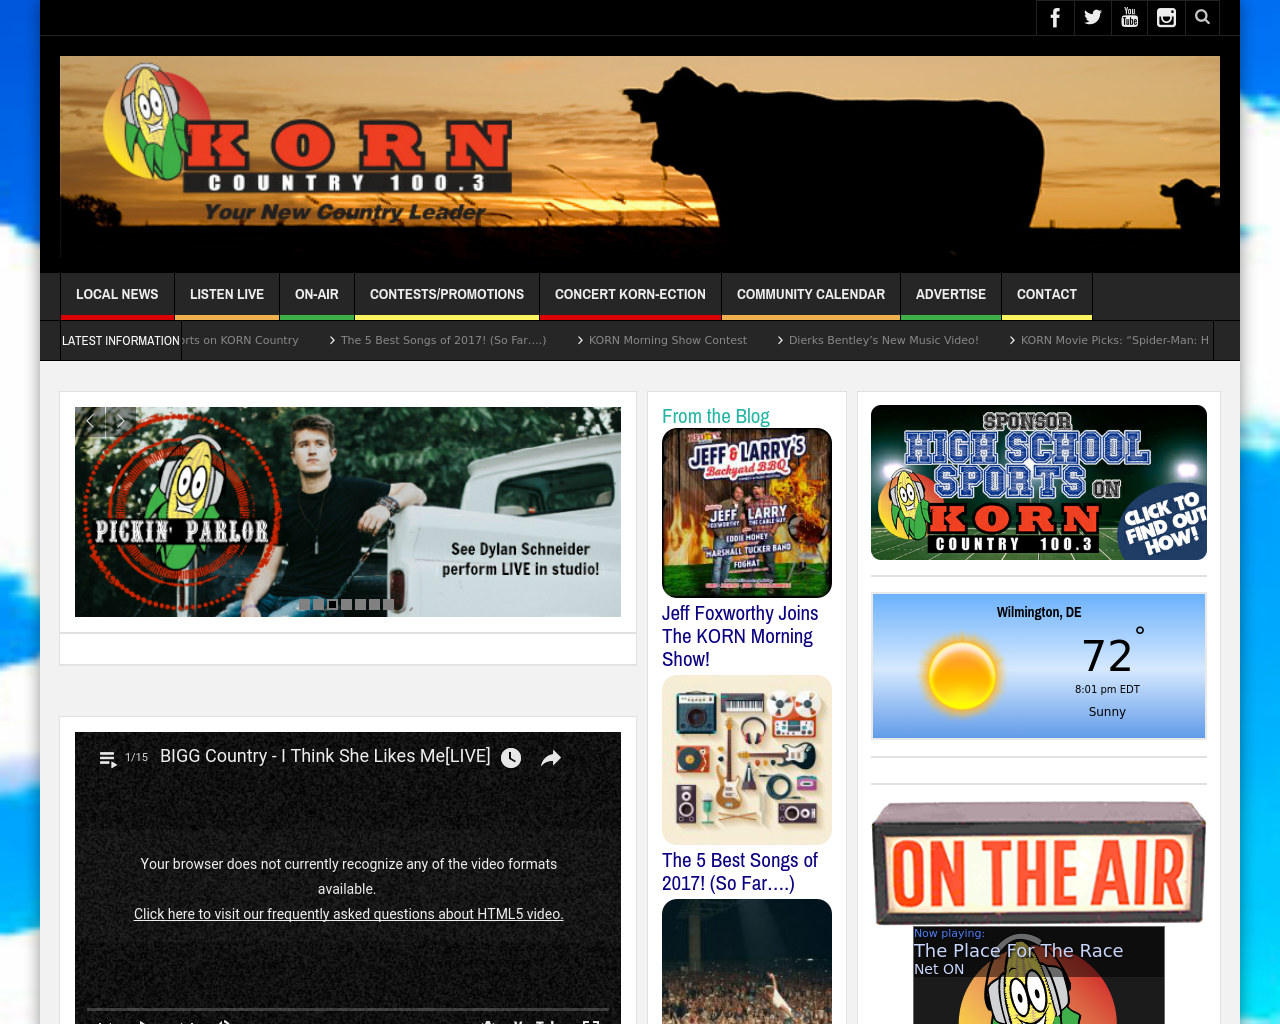 KORN-COUNTRY-100.3-Advertising-Reviews-Pricing